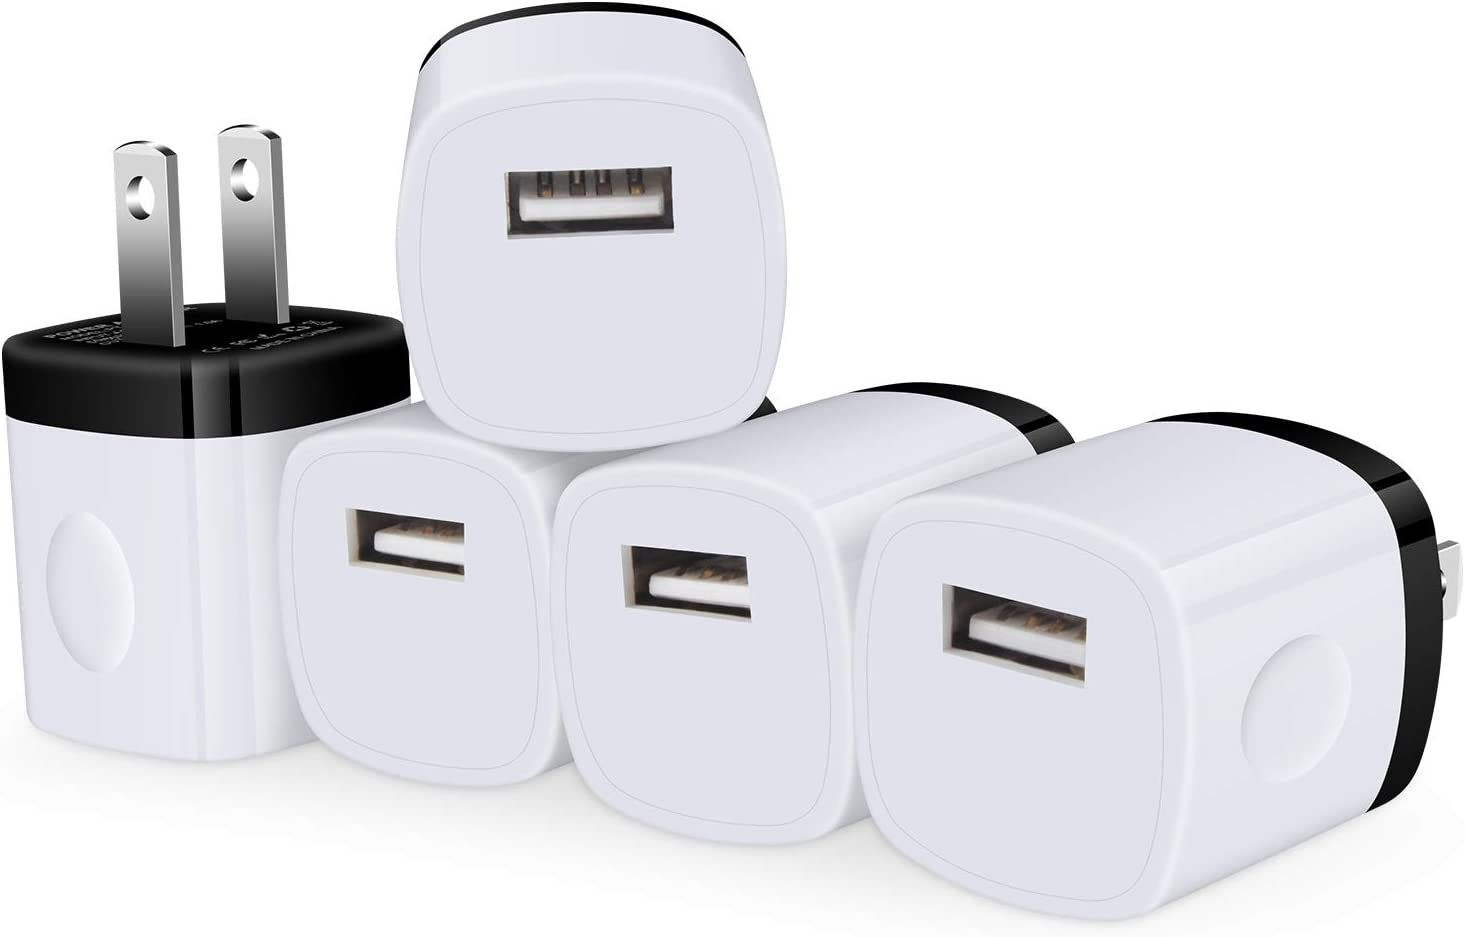 iPhone 12 Pro Charger Blocks Fast Charging Single USB Wall Plug Cube Fast Charger Box Travel Power Adapter Compatible iPhone 11/12 Pro Max X 8 SE, iPad Pro 12.9/11, Samsung S21 Plus Note 20 5Pack